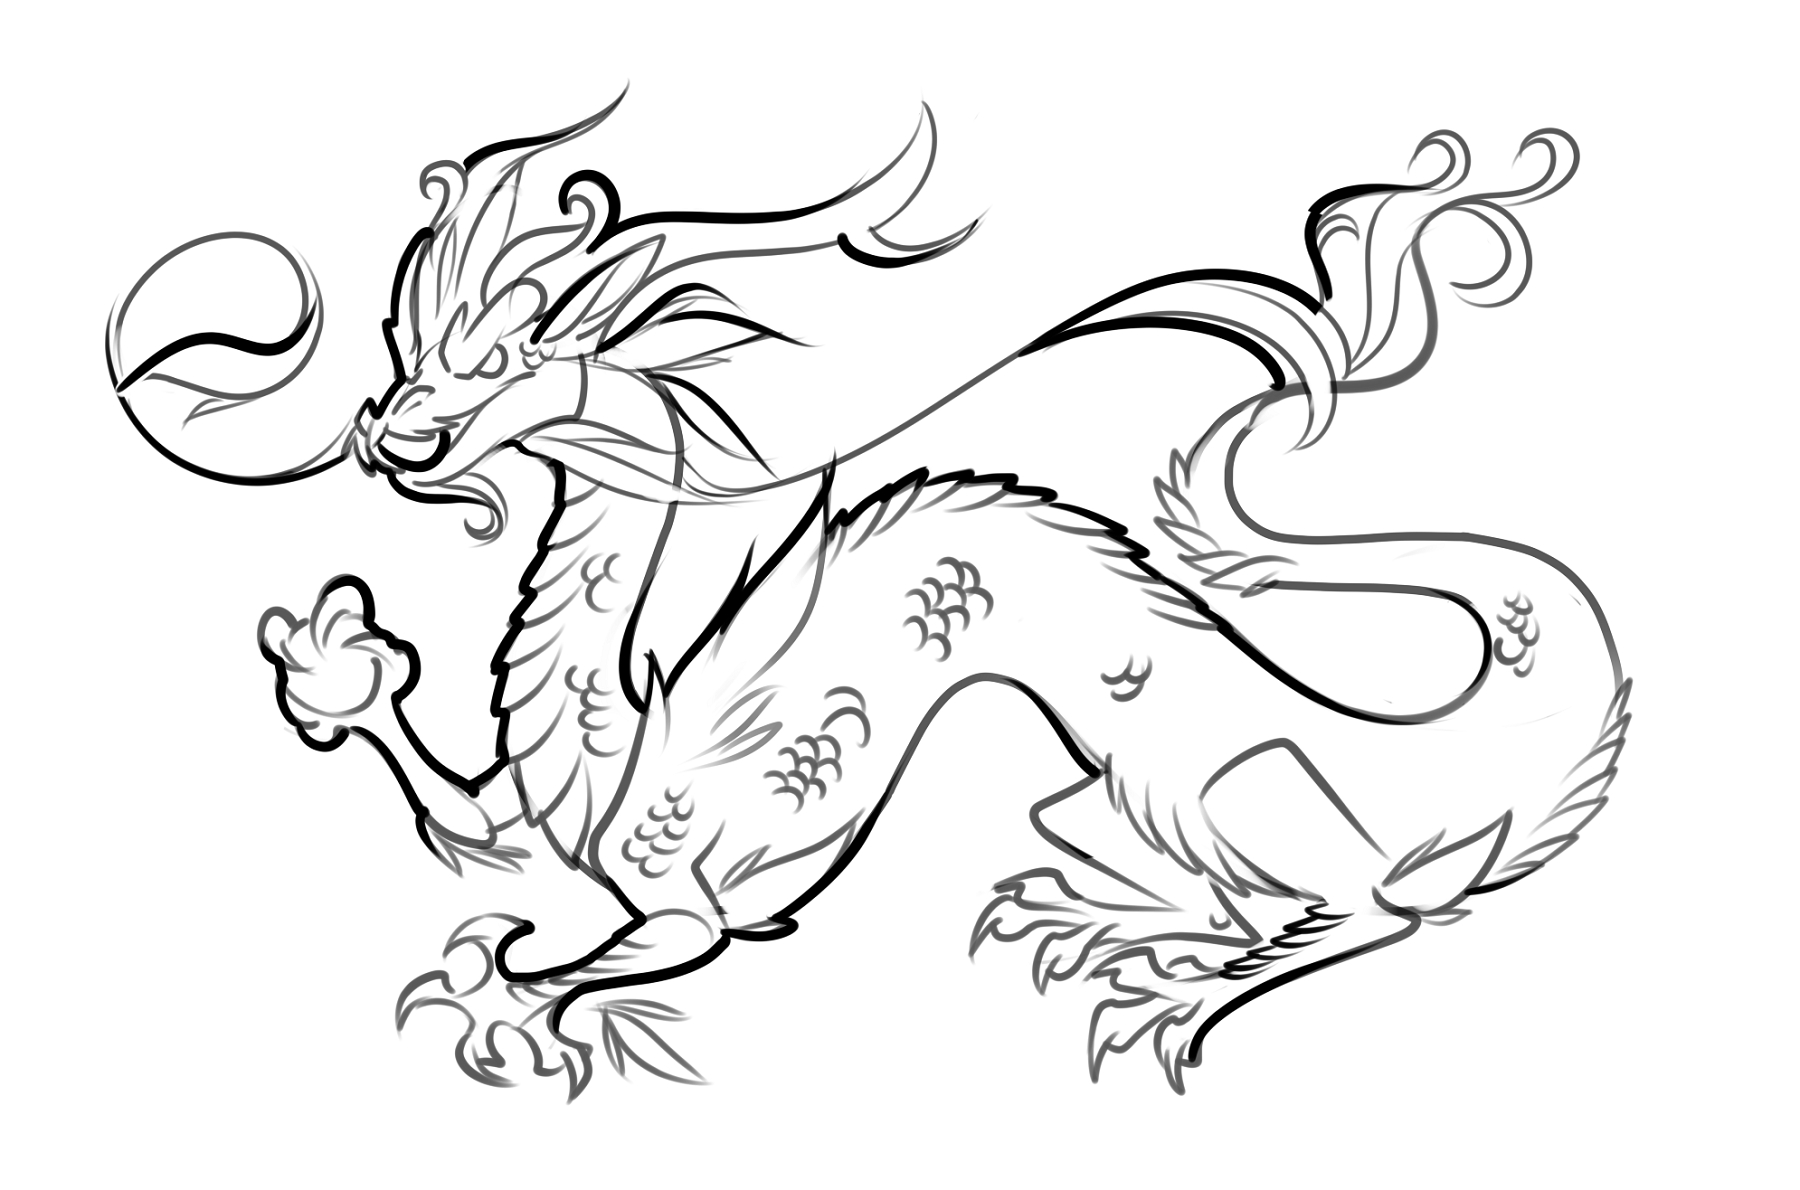 Dragon Coloring Pages Printable | Mythical Creatures Day Camp - Free Printable Chinese Dragon Coloring Pages